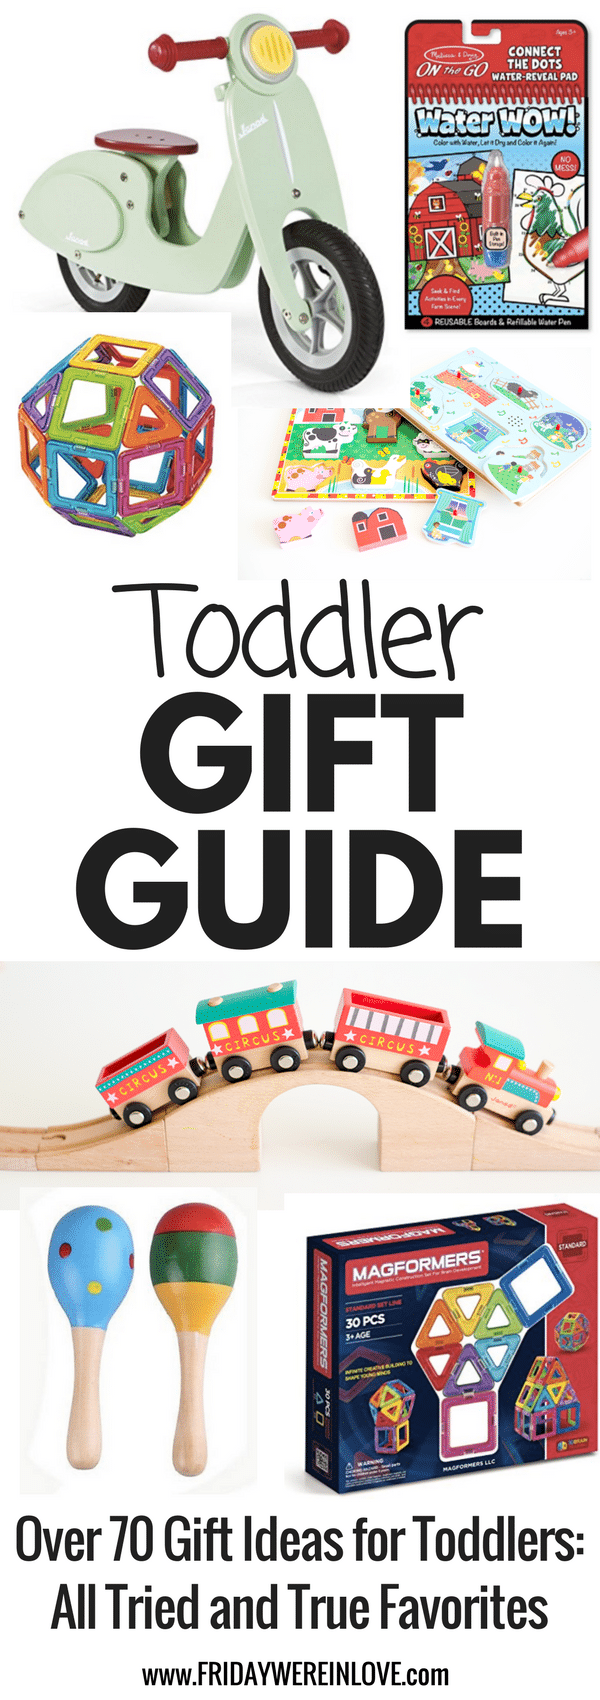 The ultimate toddler gift guide over 70 gift ideas for toddlers that are all tried  sc 1 st  Friday Weu0027re in Love & Toddler Gift Guide: Tried and True Toddler Gifts - Friday Weu0027re in Love